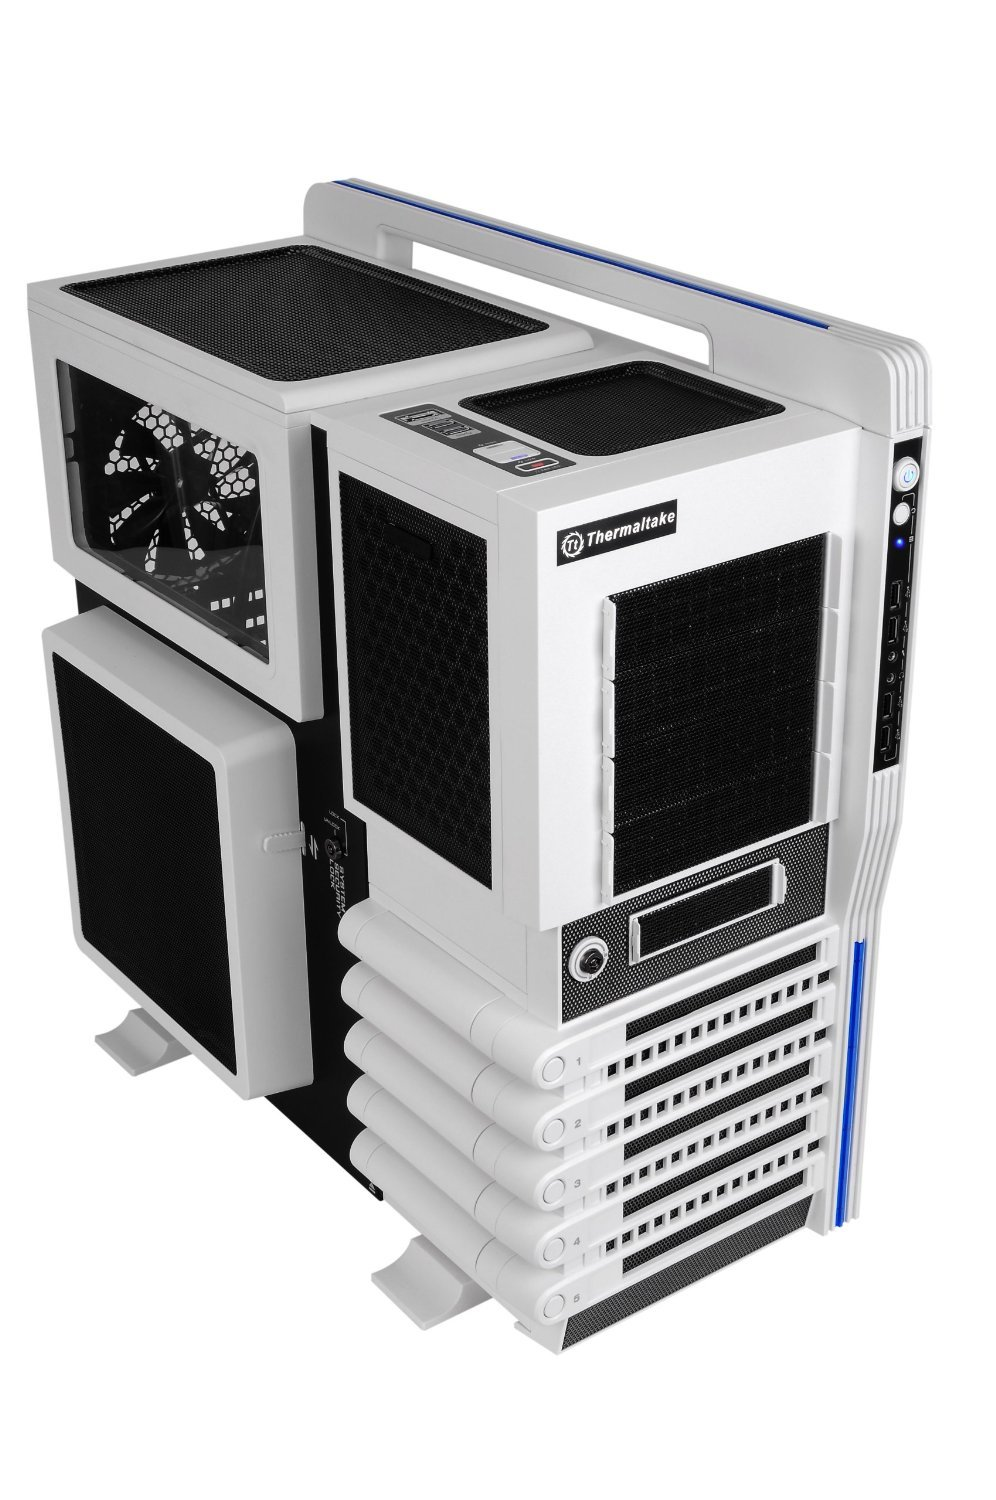 Thermaltake LEVEL 10 GT Super Gaming Modular Full Tower Computer Case - VN10006W2N Snow Edition